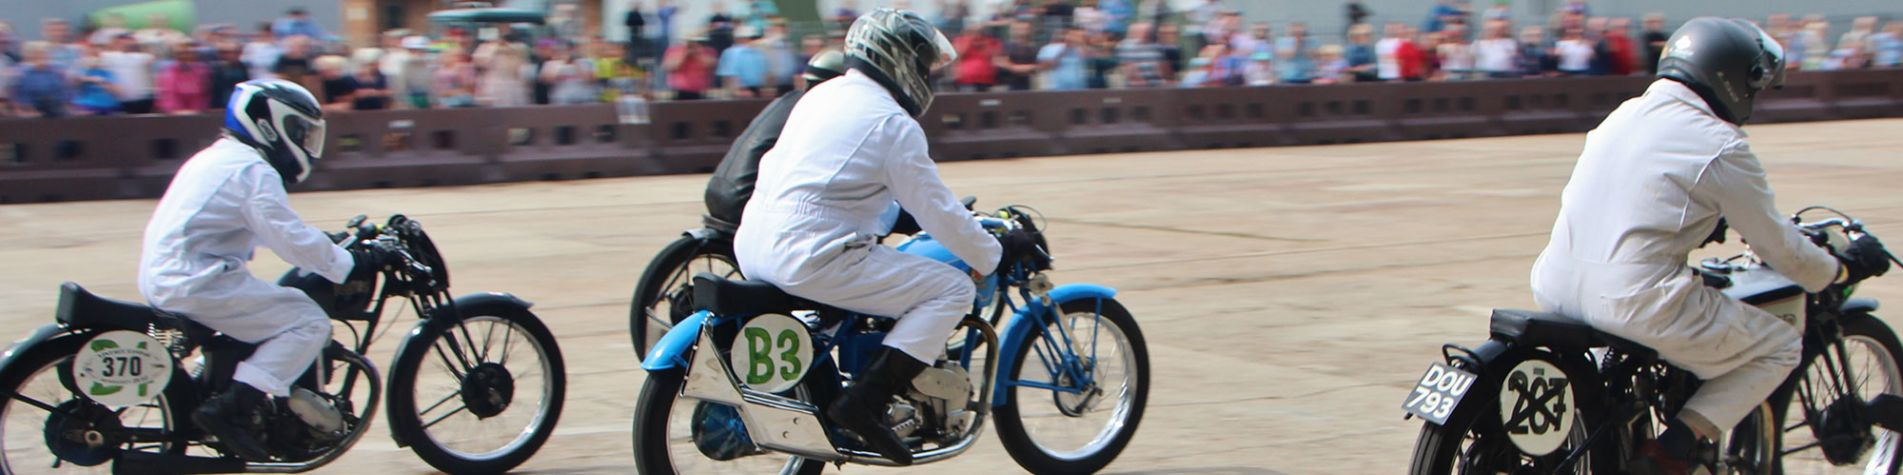 relived-motorcycle-race-header.jpg